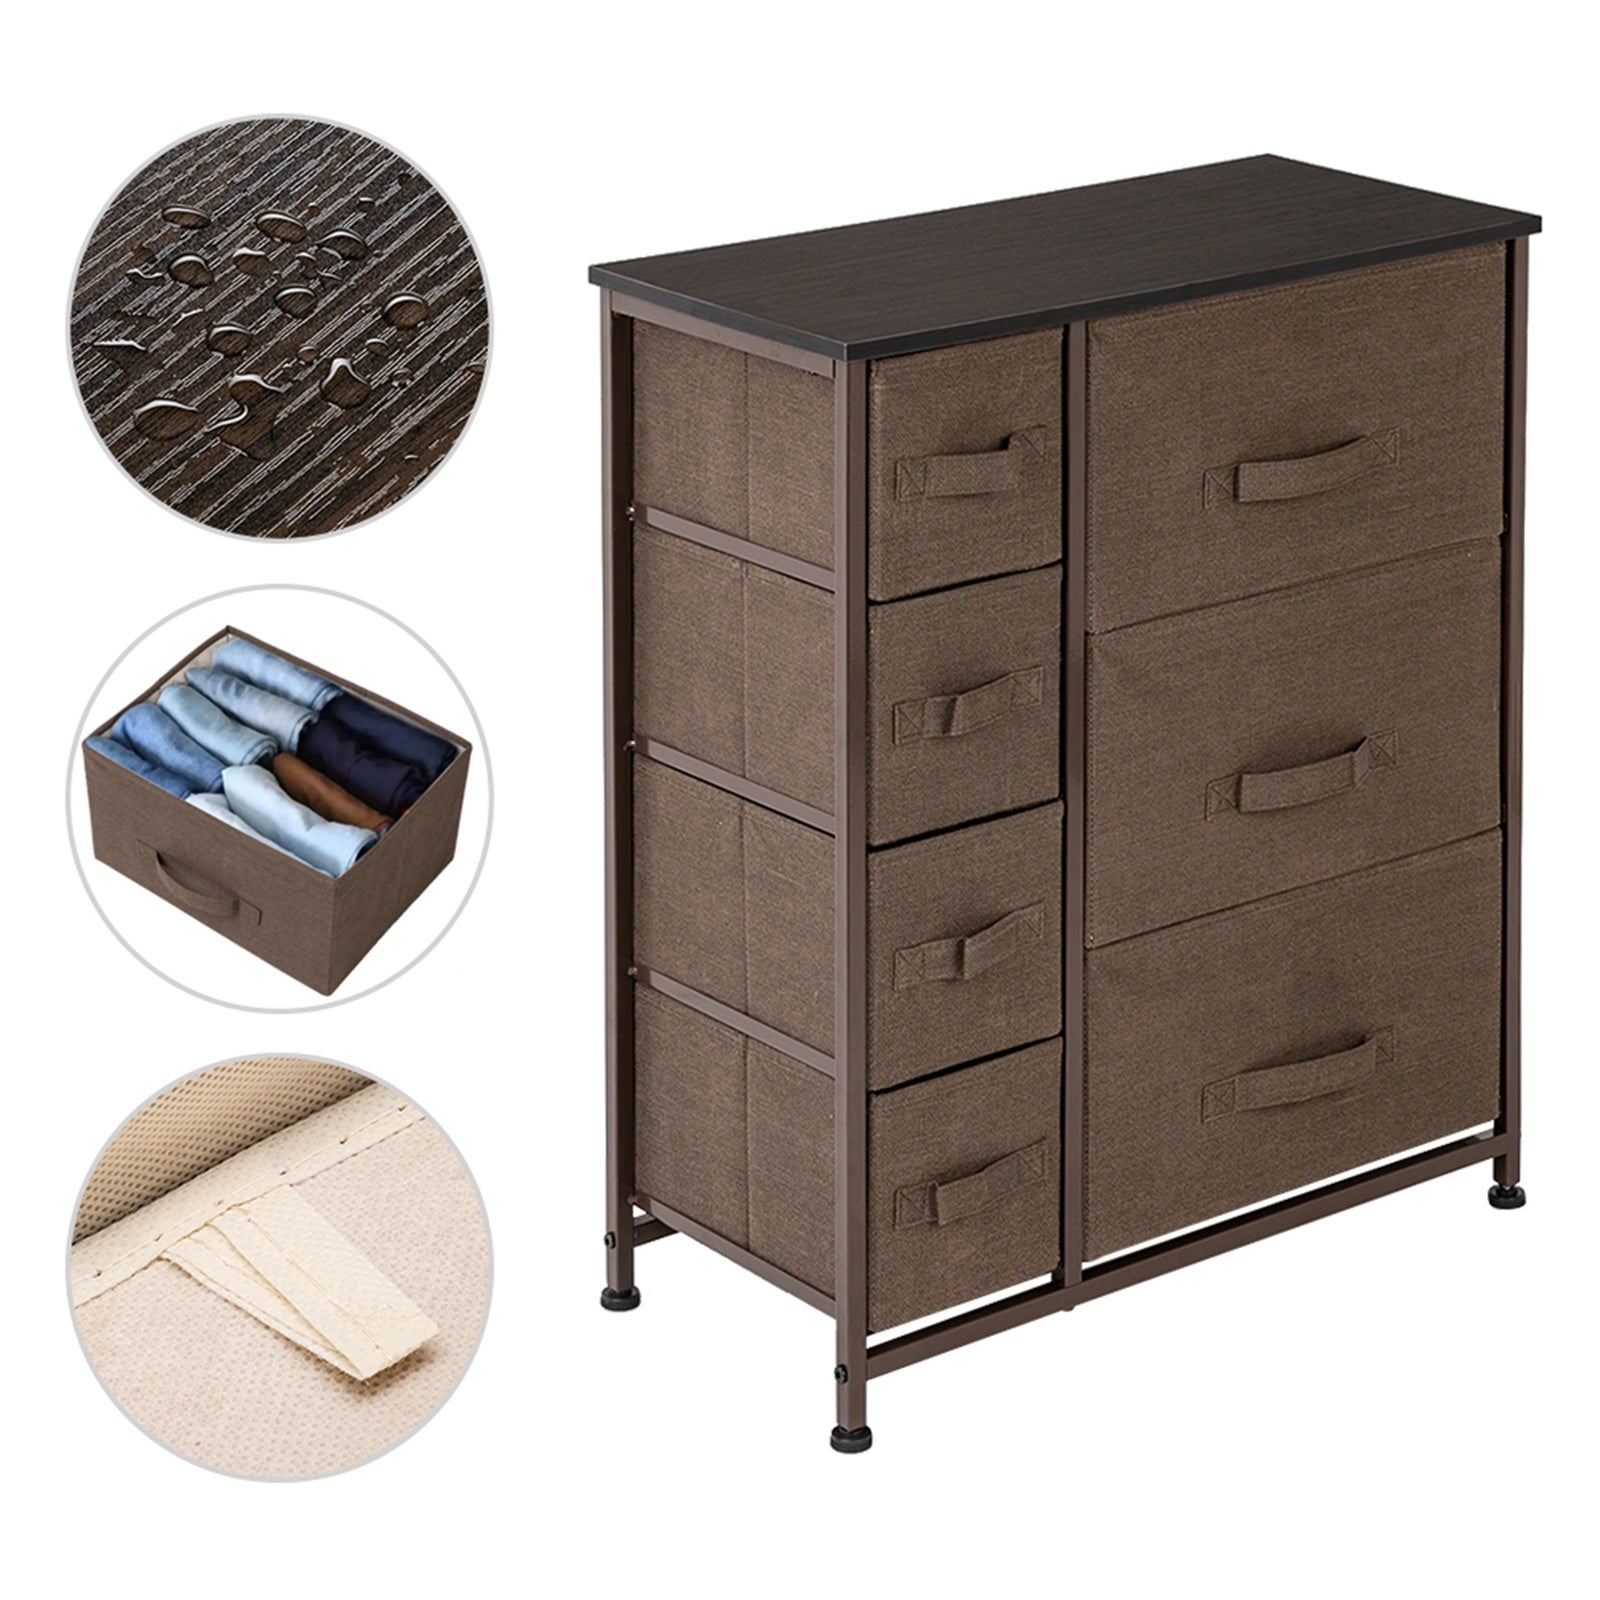 Dresser With 7 Drawers - Furniture Storage Tower Unit For Bedroom, Hallway, Closet, Office Organization - Steel Frame, Wood Top, Easy Pull Fabric Bins RT